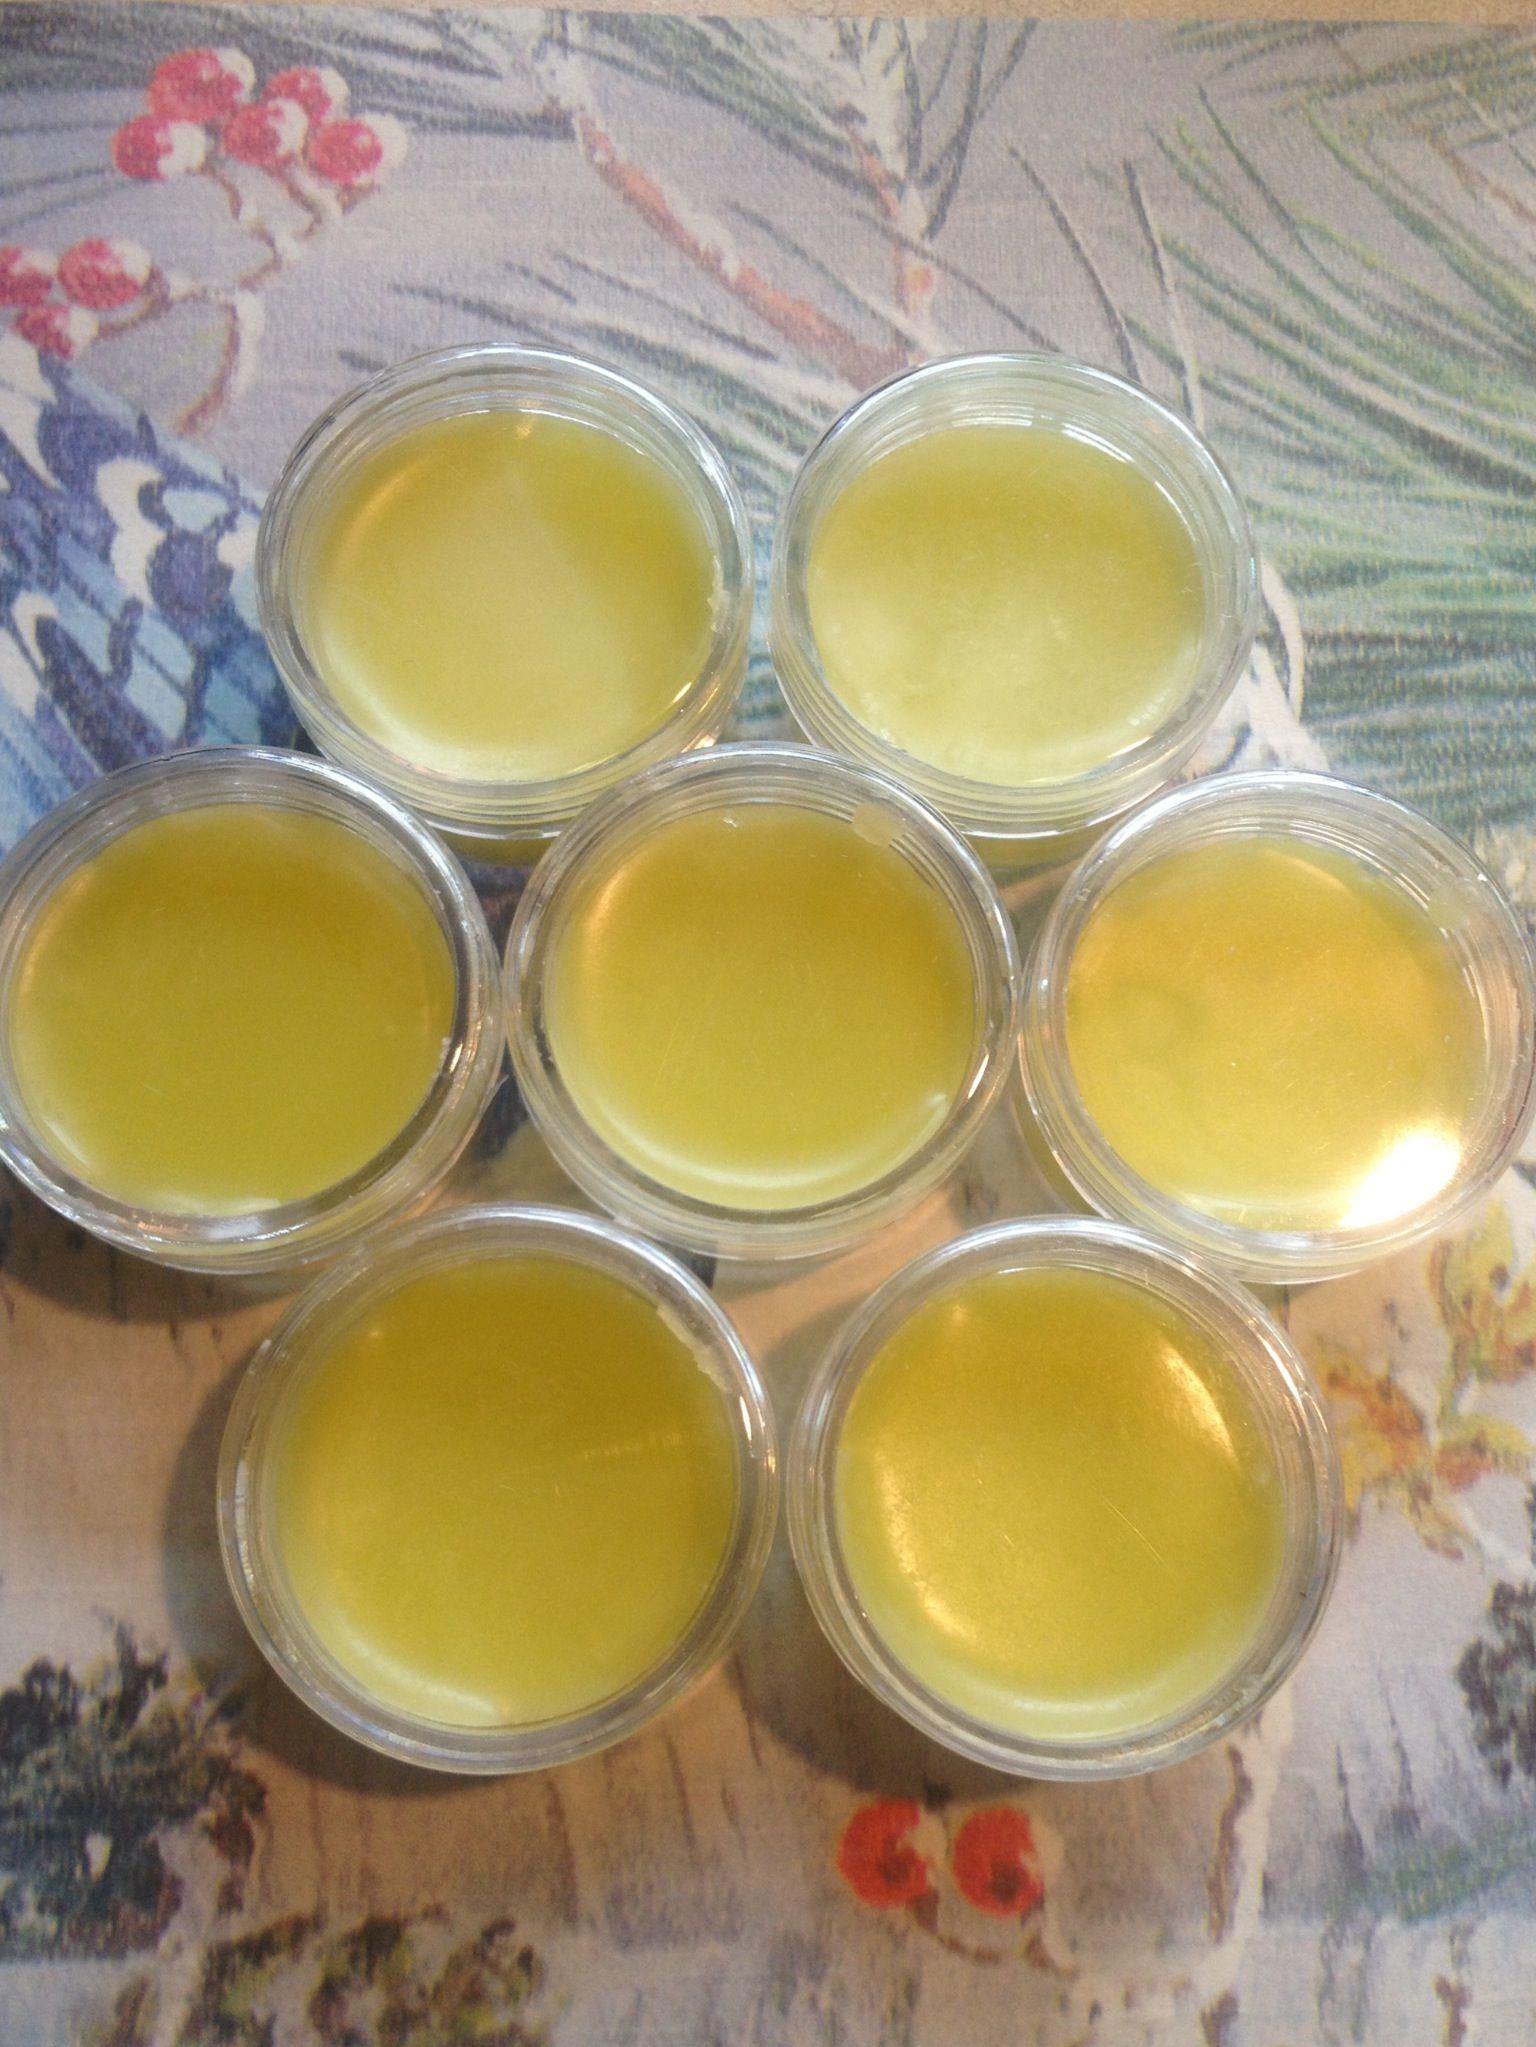 Home made lip balm contains 1 12 parts olive oil 1 part